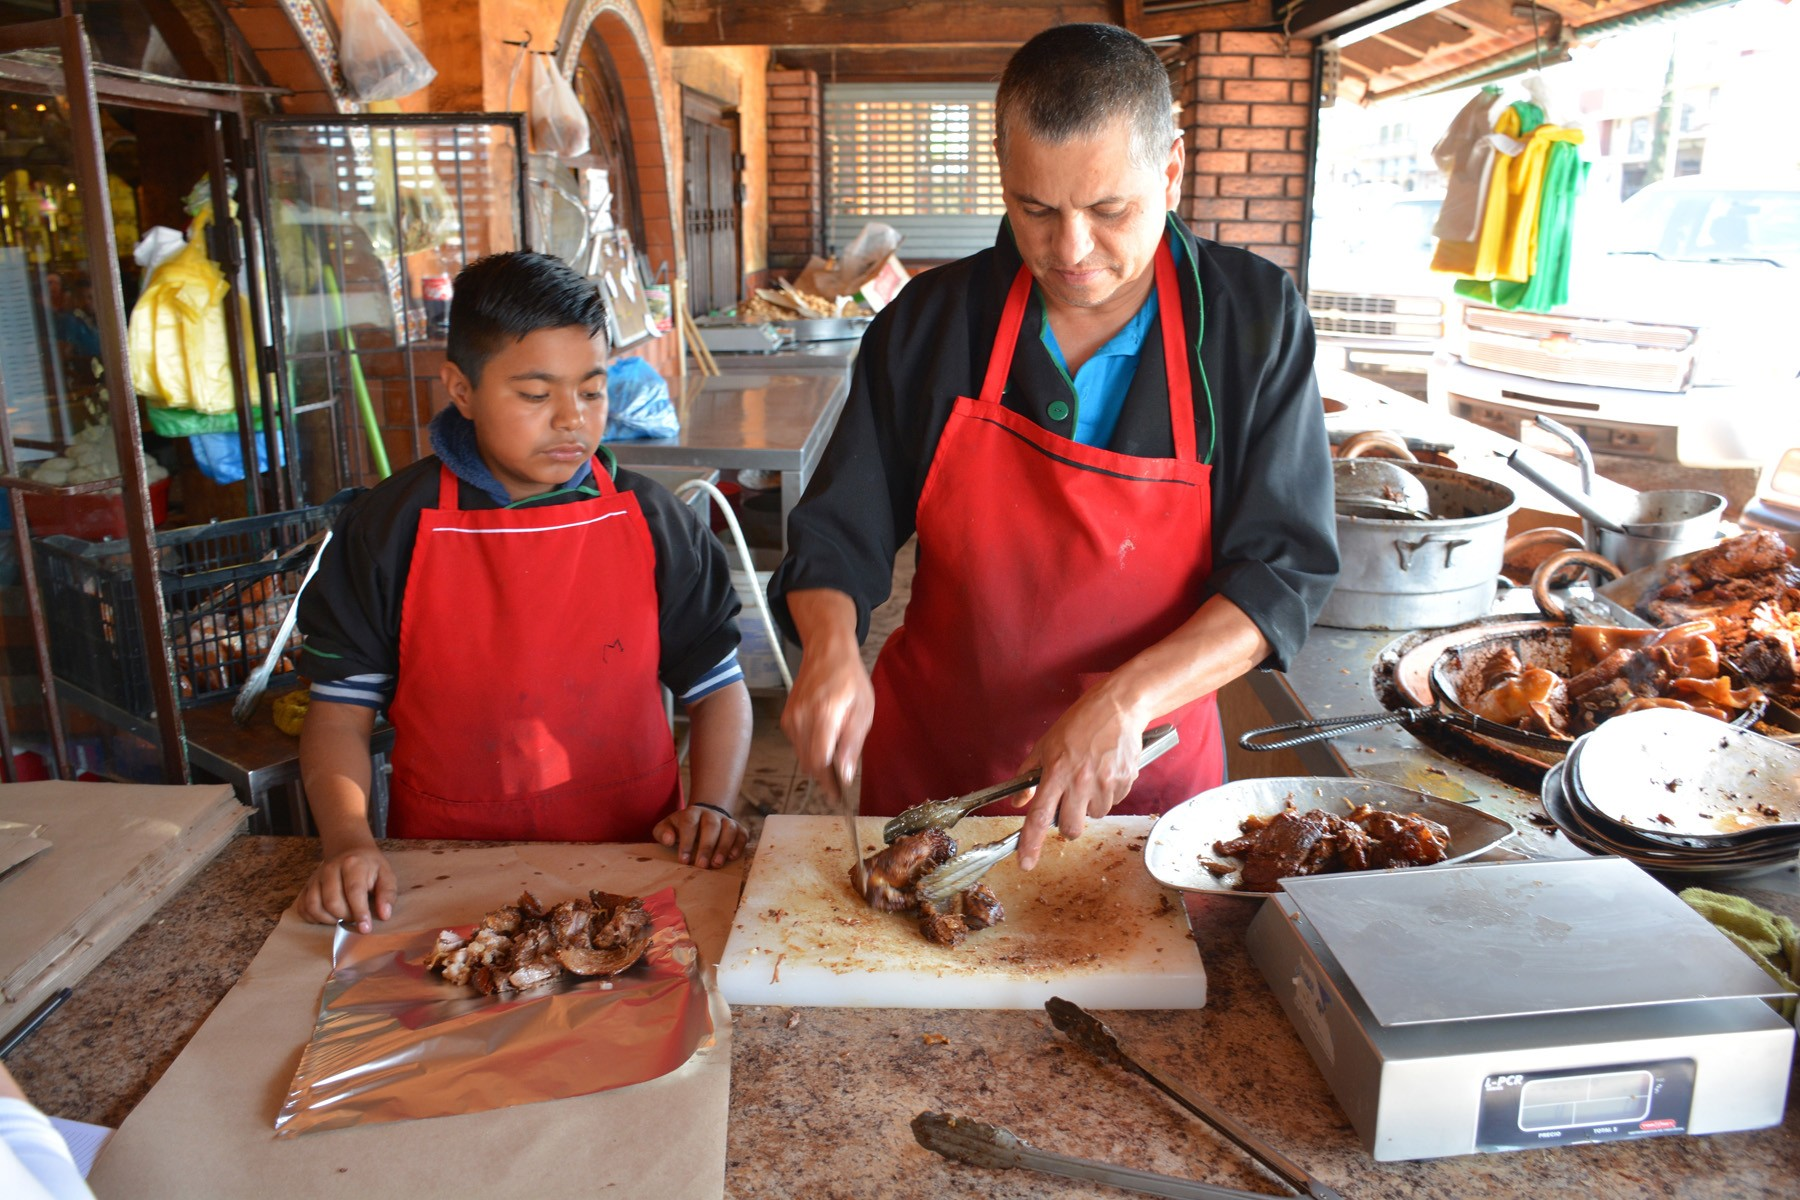 carnitas_chopping_with_son - 1